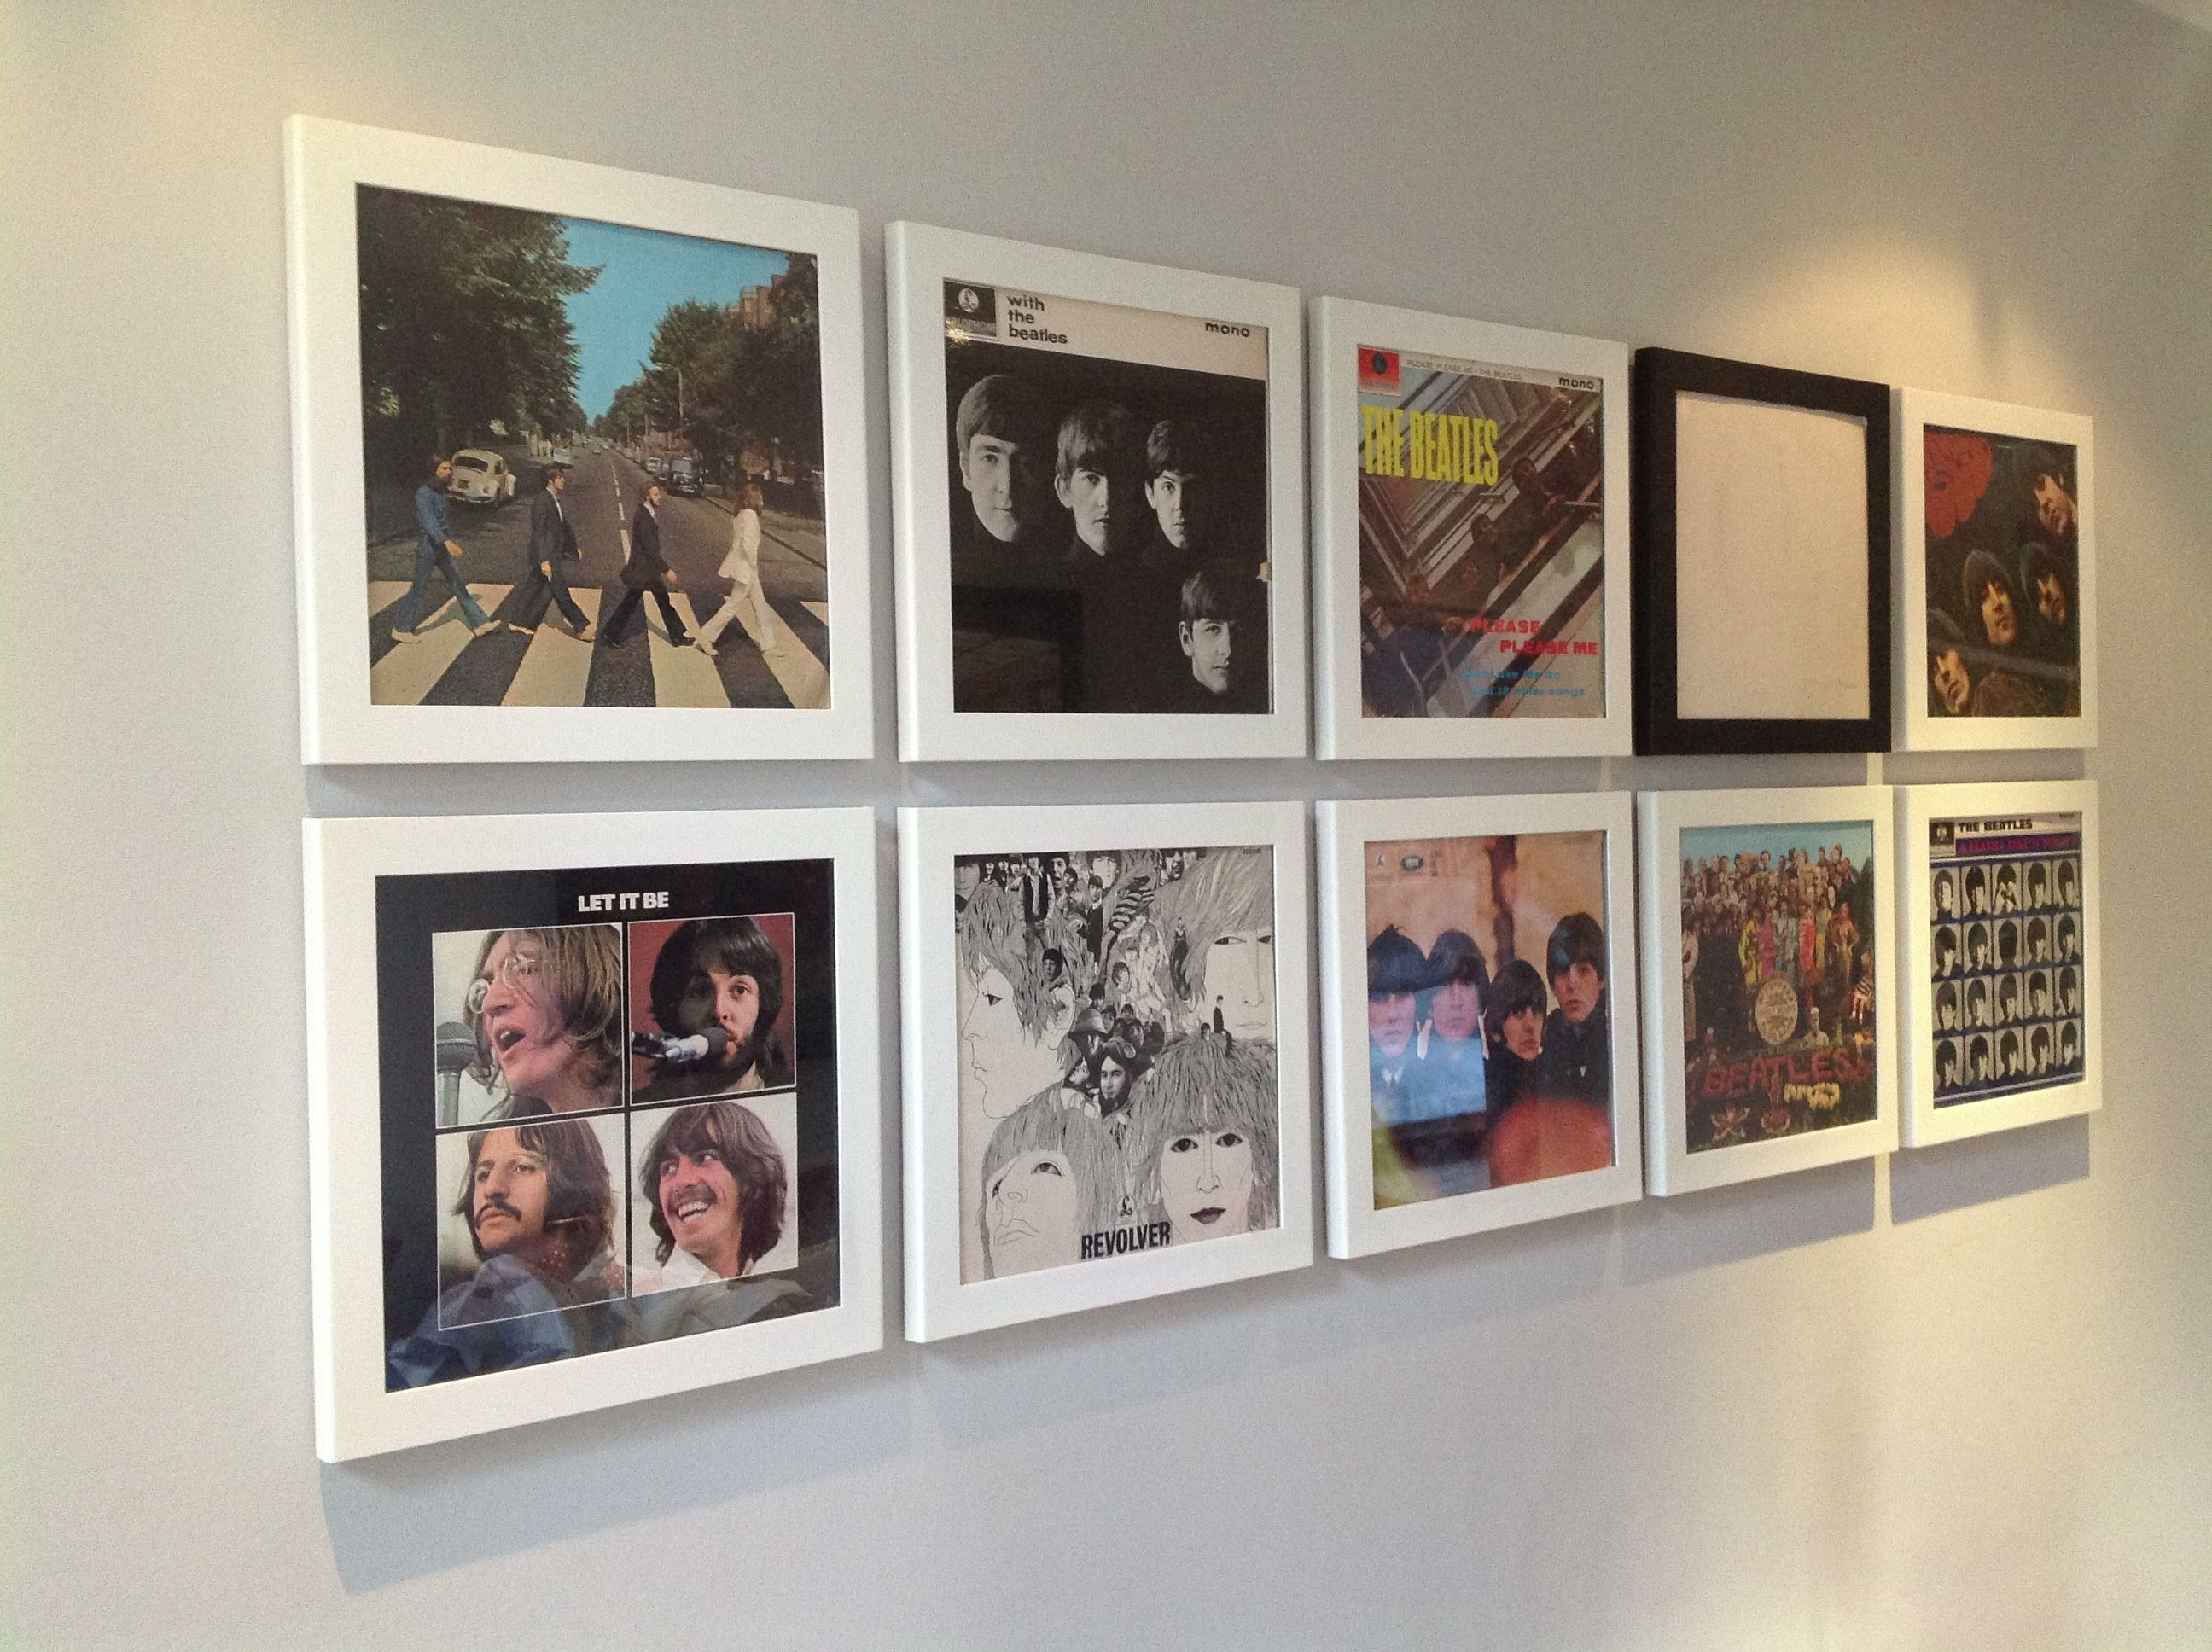 Cheap Wall Art great idea for cheap wall art.old album covers in frames | wall